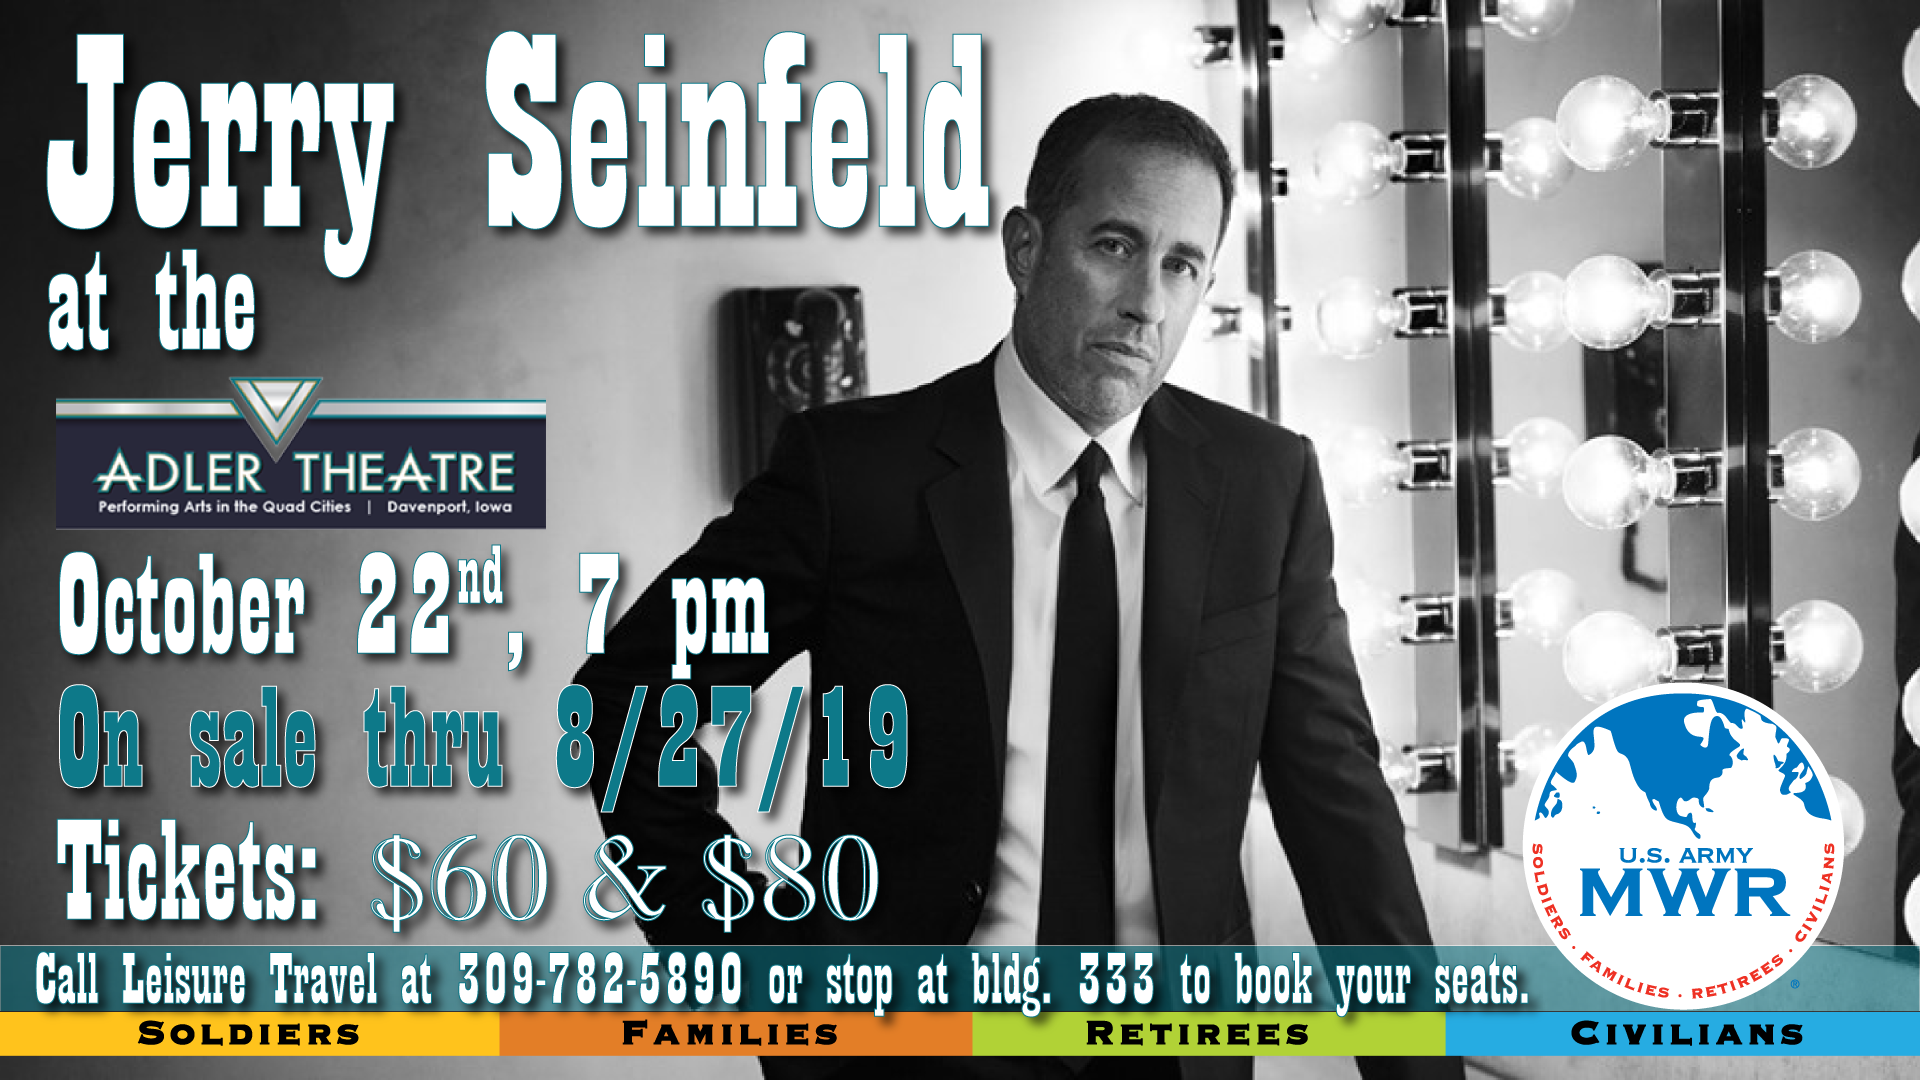 Jerry Seinfeld at the Adler Theatre